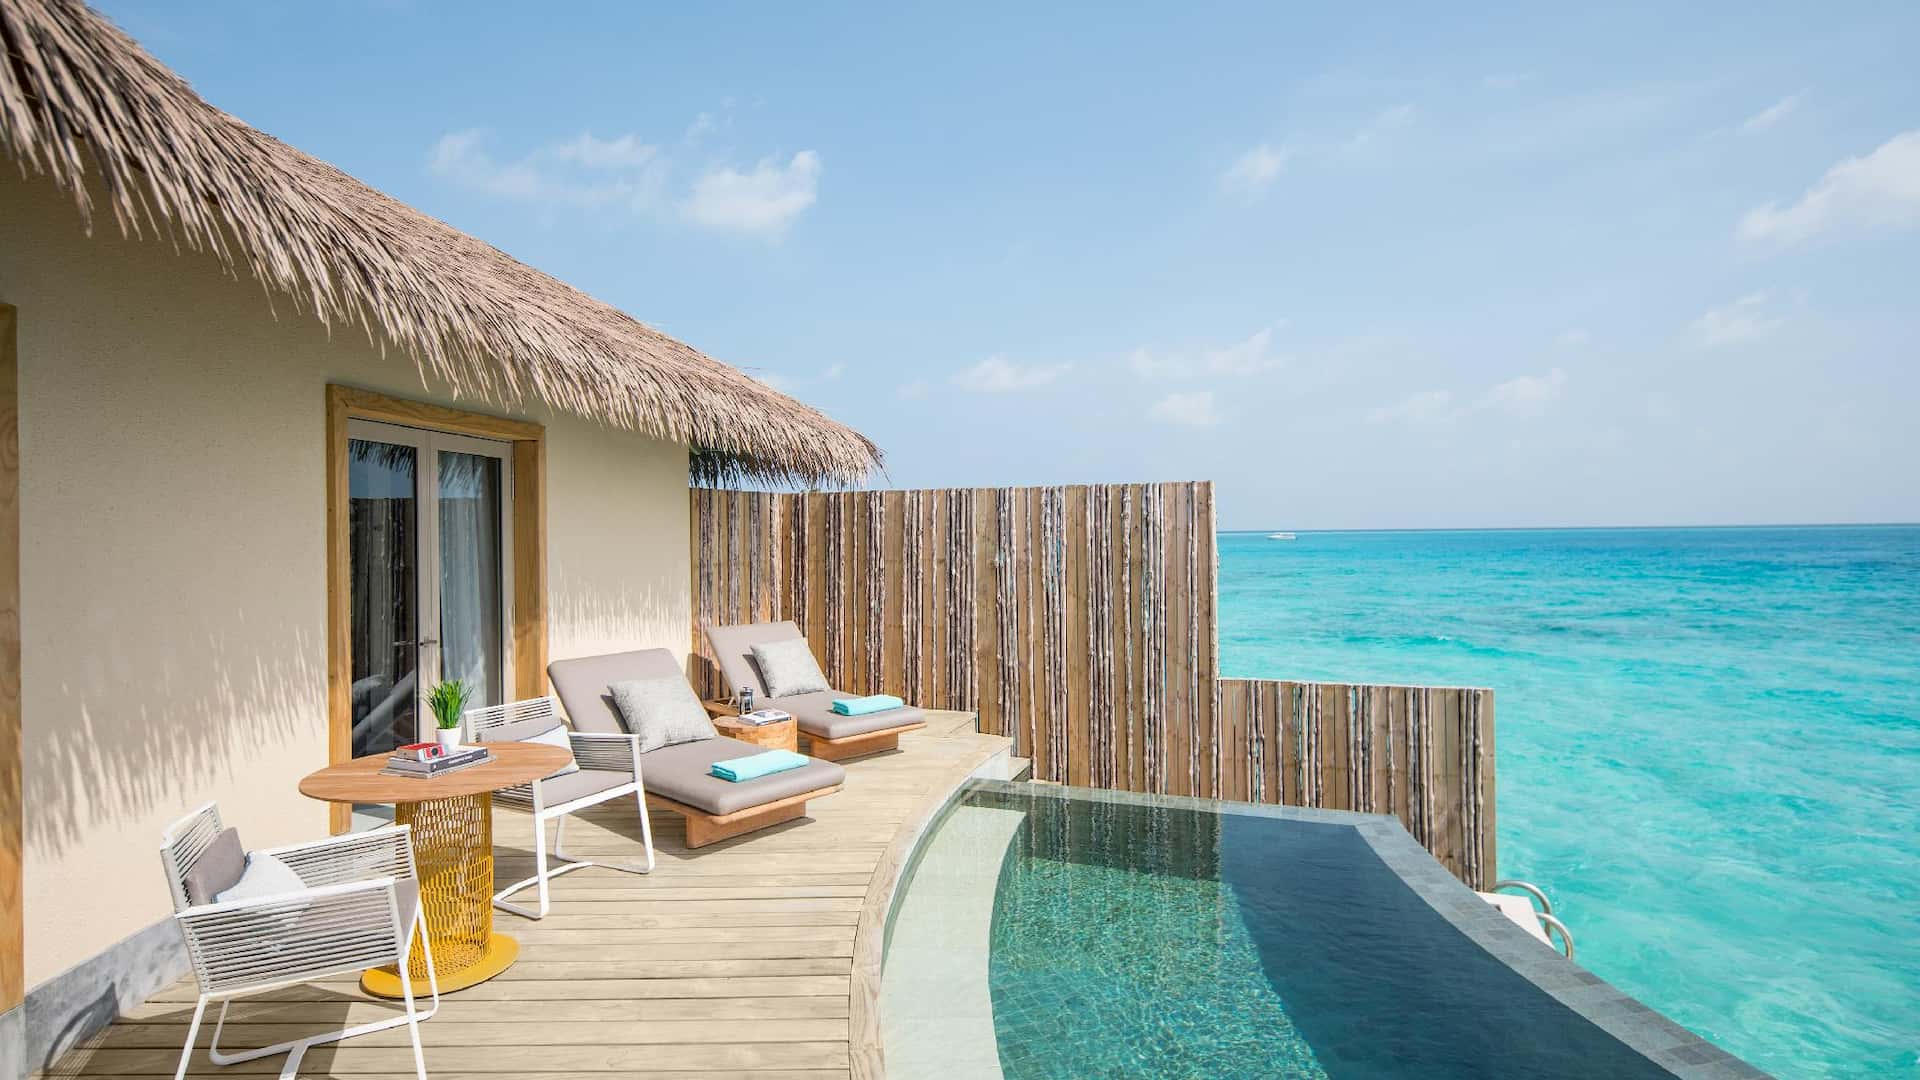 Resort Maldive Intercontinental Maamunga overwater villa